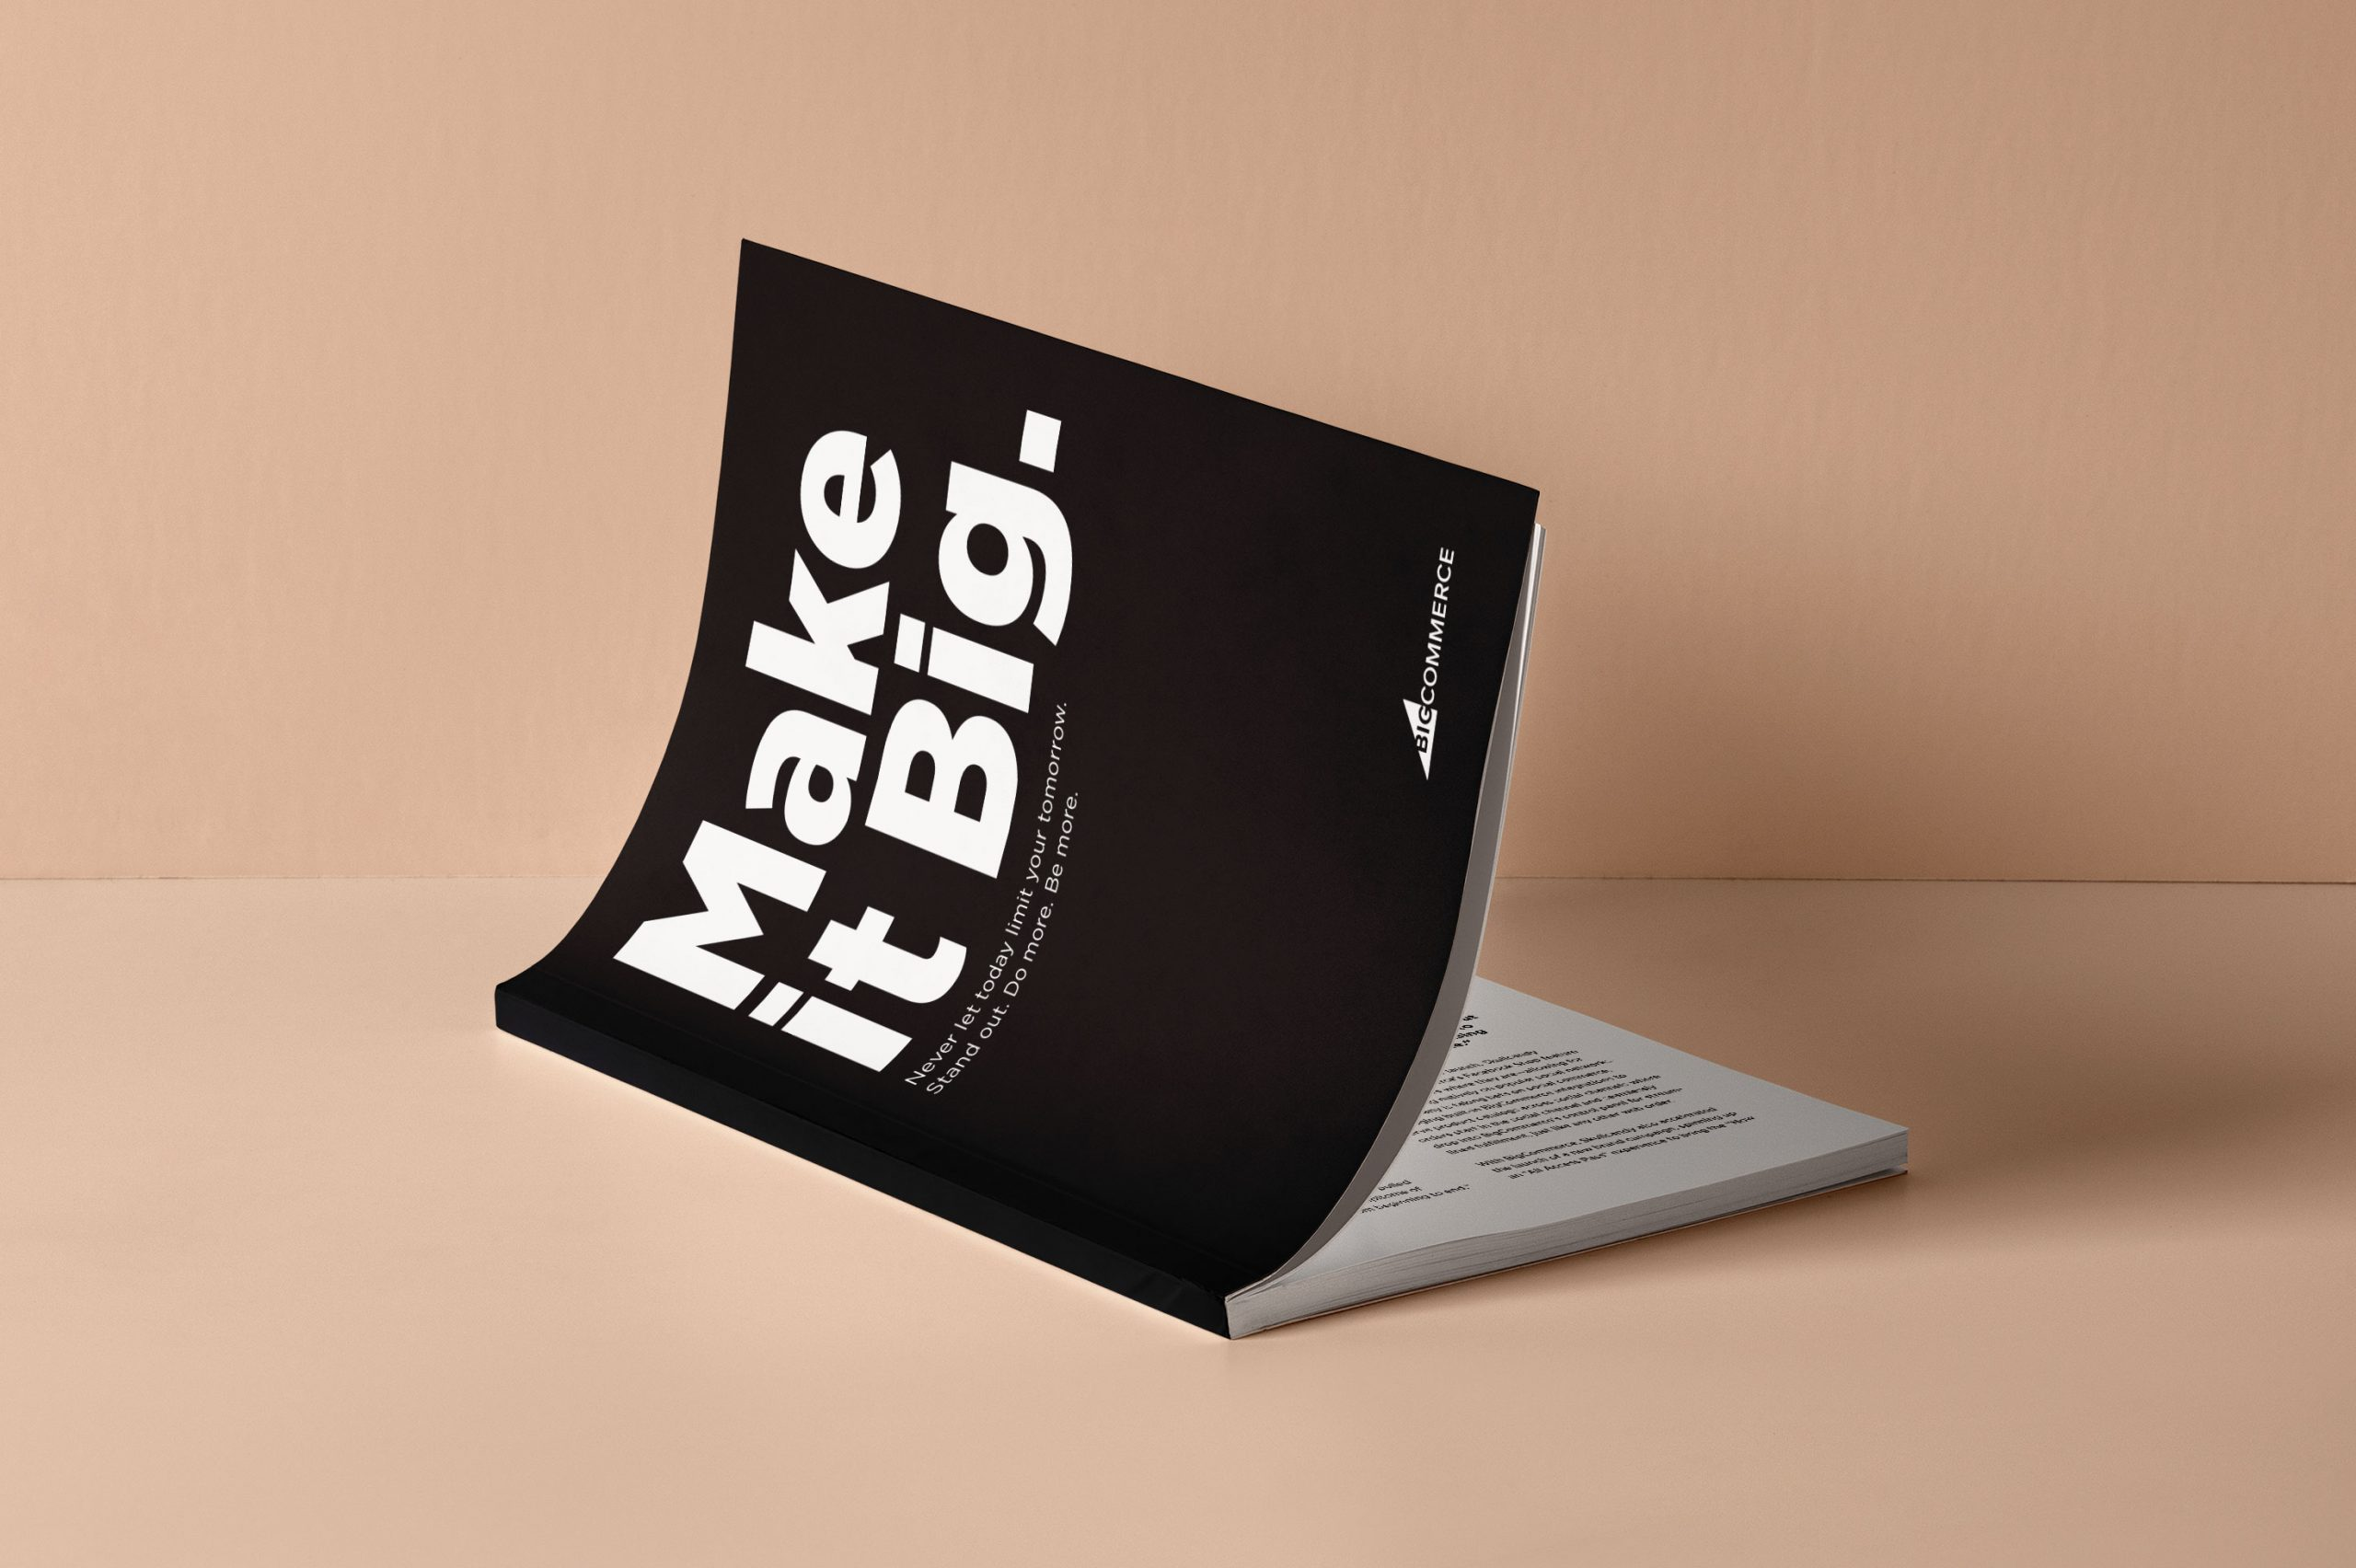 bigcommerce make it big brand book cover